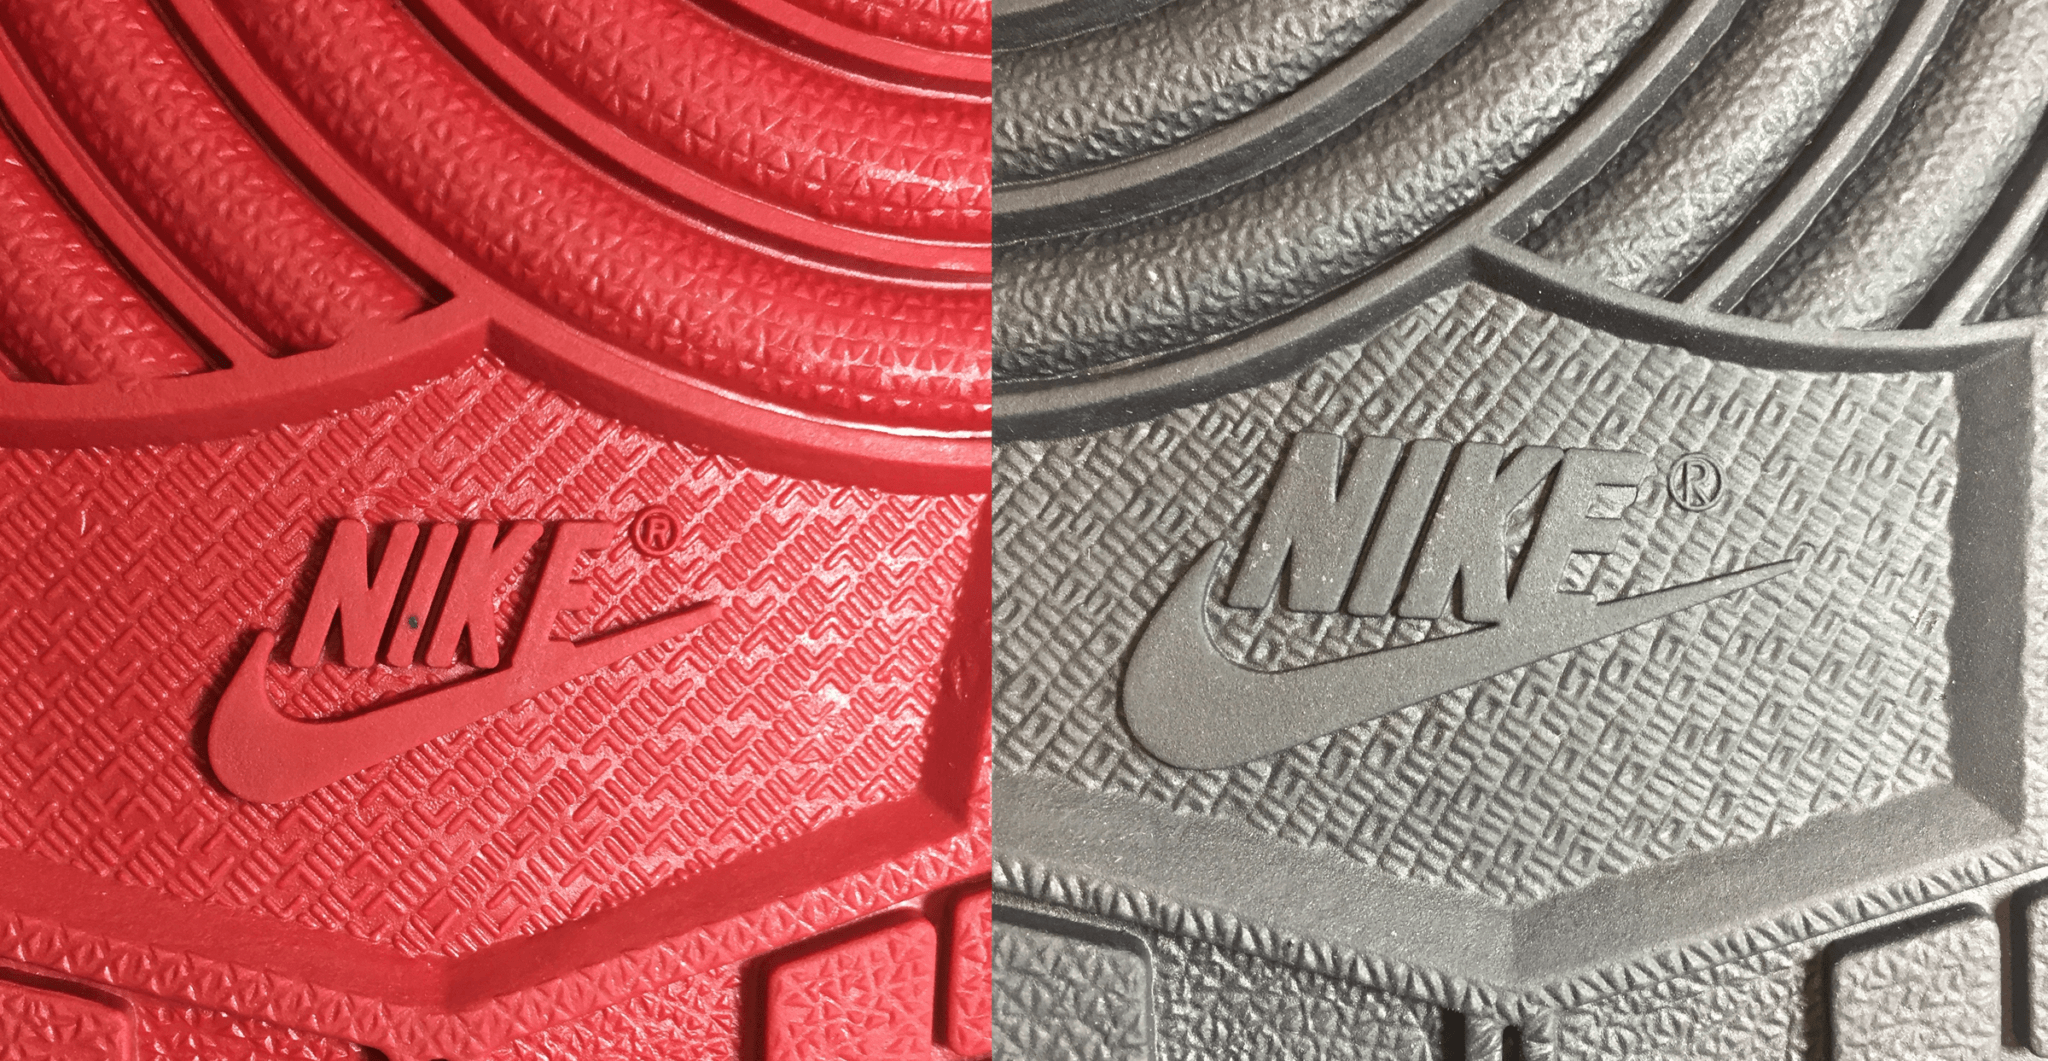 Sole on Fake NIke shoe